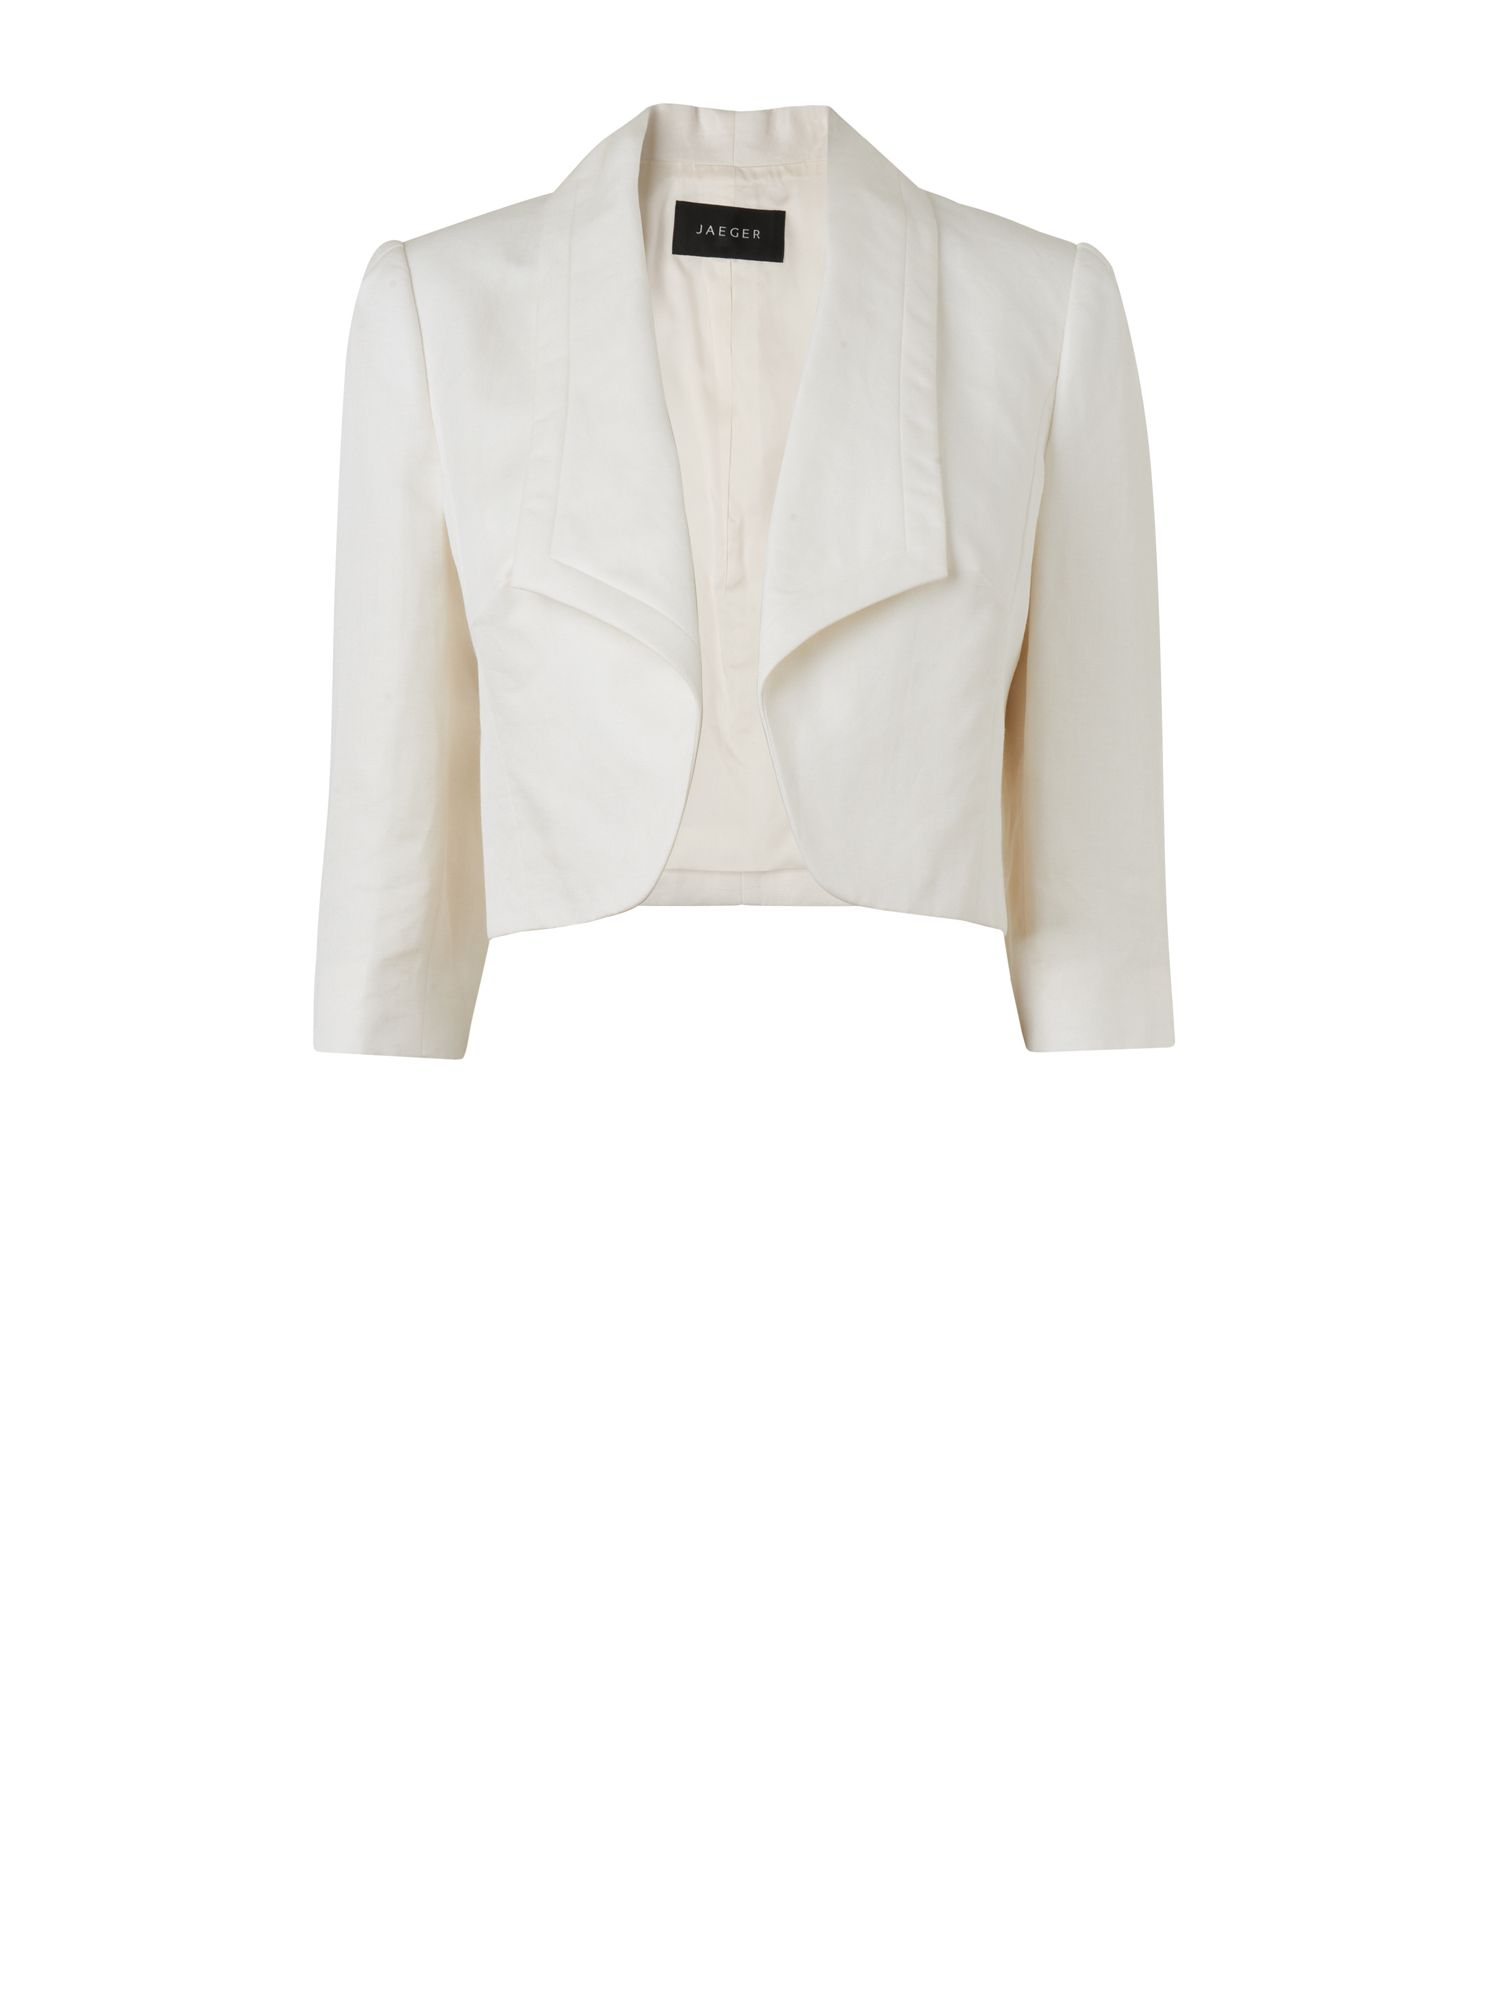 Edge to edge silk linen jacket